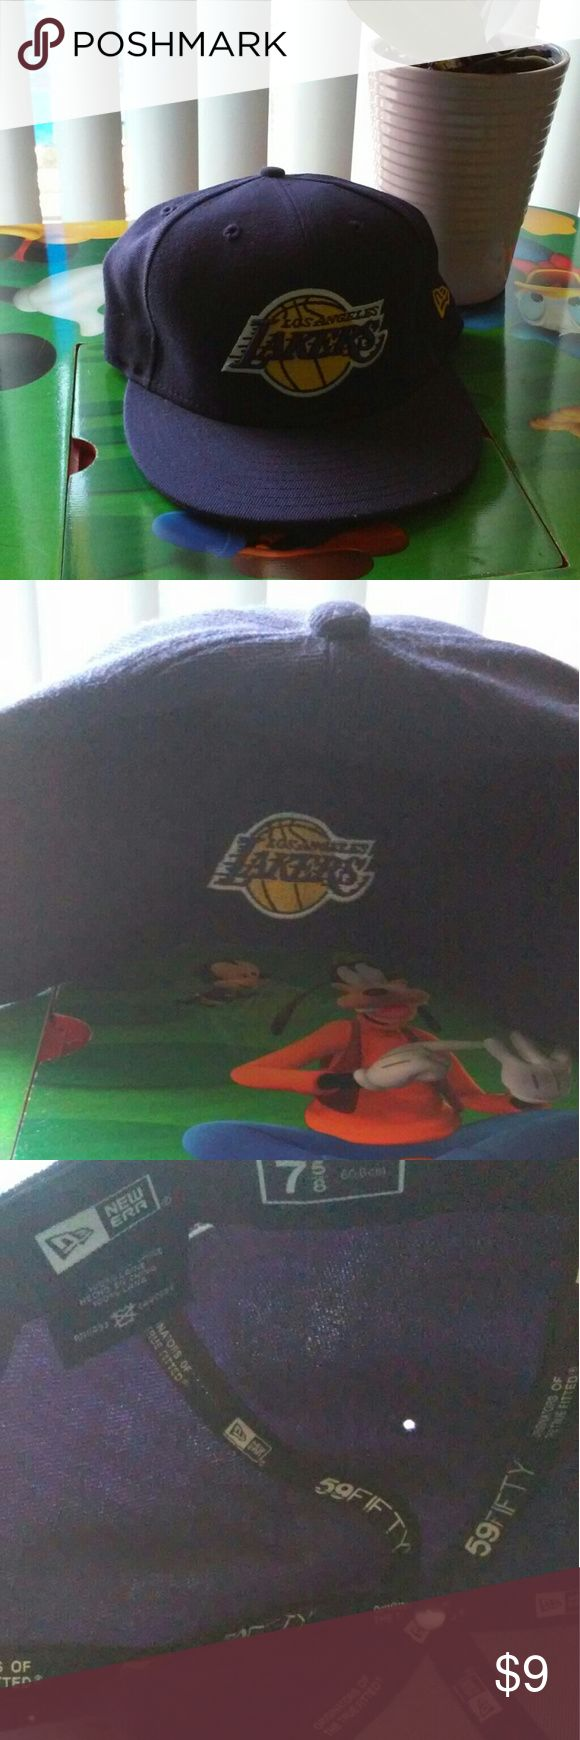 Selling this L.A. Lakers 75 cap new era good shape on Poshmark! My username is: vintagelvr8787. #shopmycloset #poshmark #fashion #shopping #style #forsale #New Era #Other